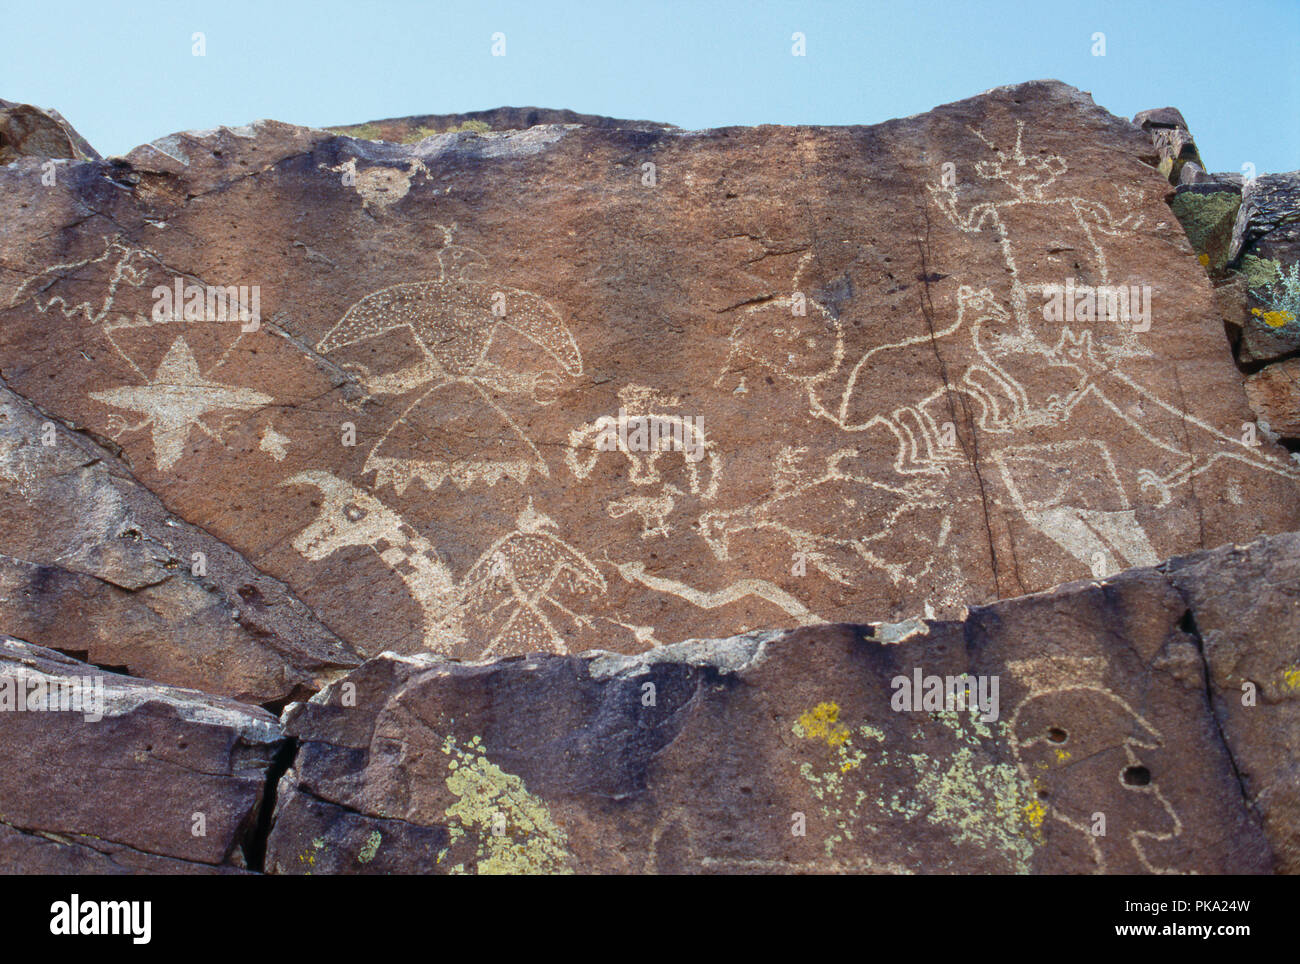 Thunderbird, plumed serpent and other Native American petroglyphs near Galisteo, New Mexico. Photograph - Stock Image